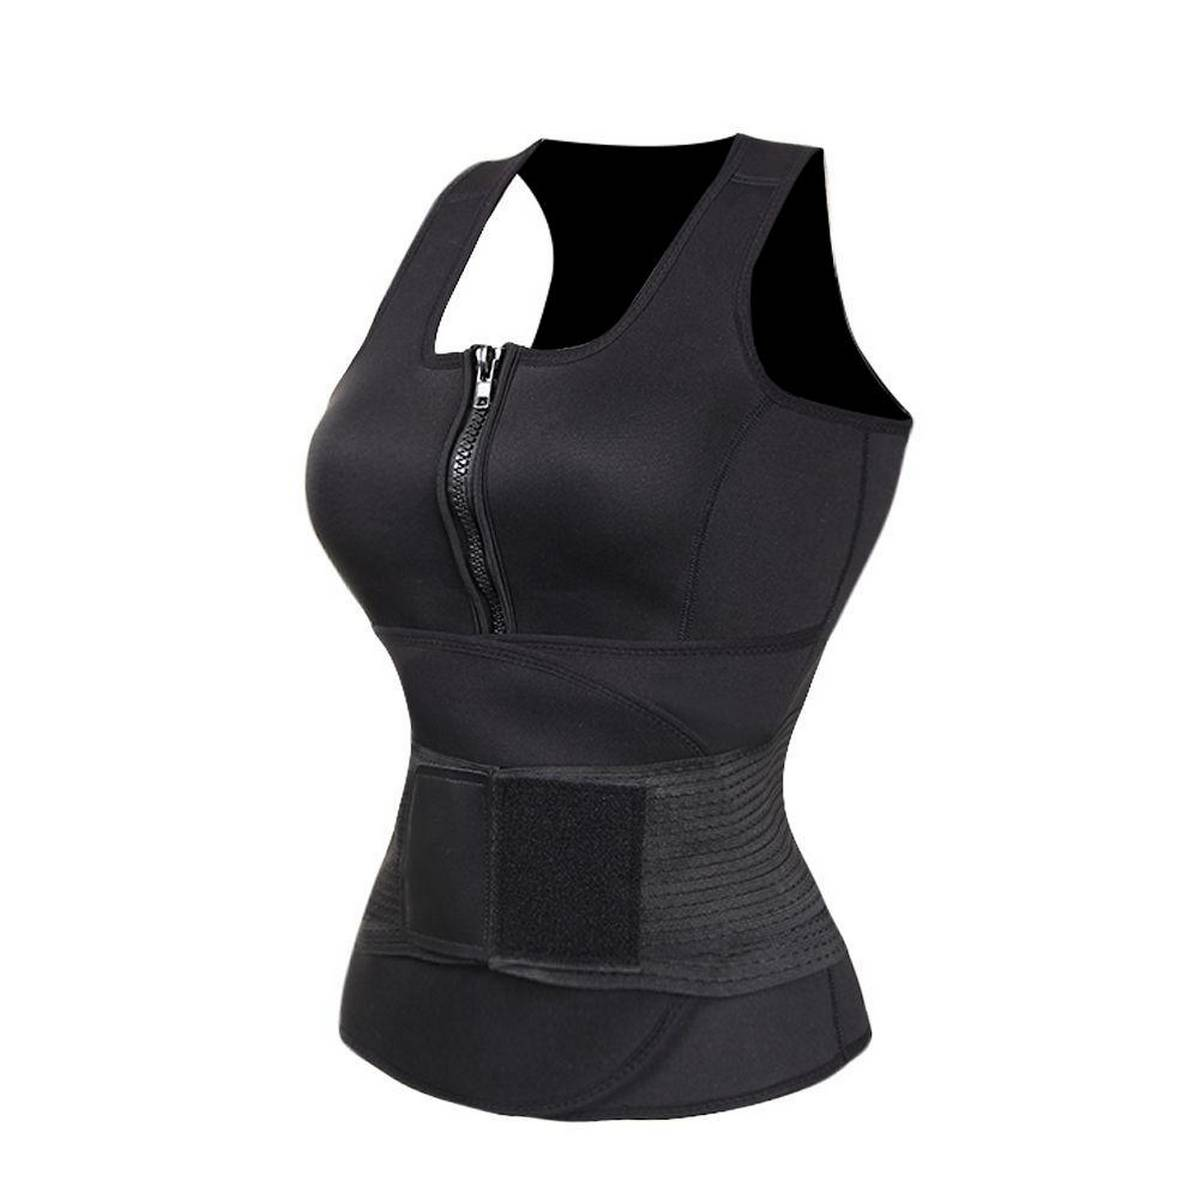 Waist Trimmer. Belly Fat Cellulite Burner With Anti-Bacterial Coating, Body Shaper Exercise Belt,